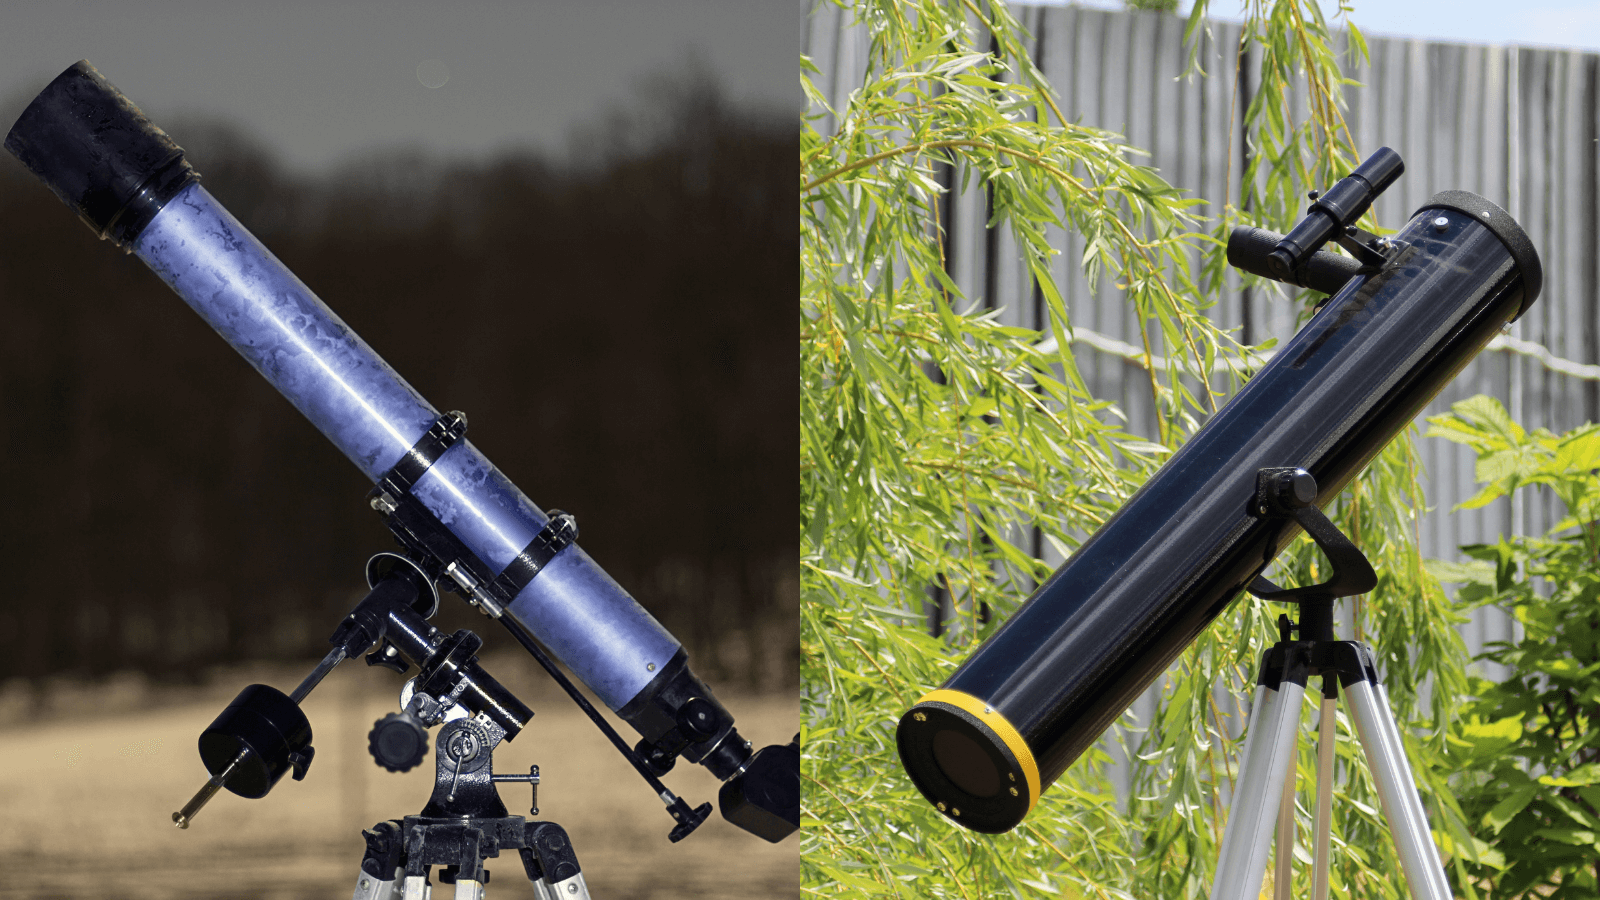 Refractor Telescope next to Reflector Telescope